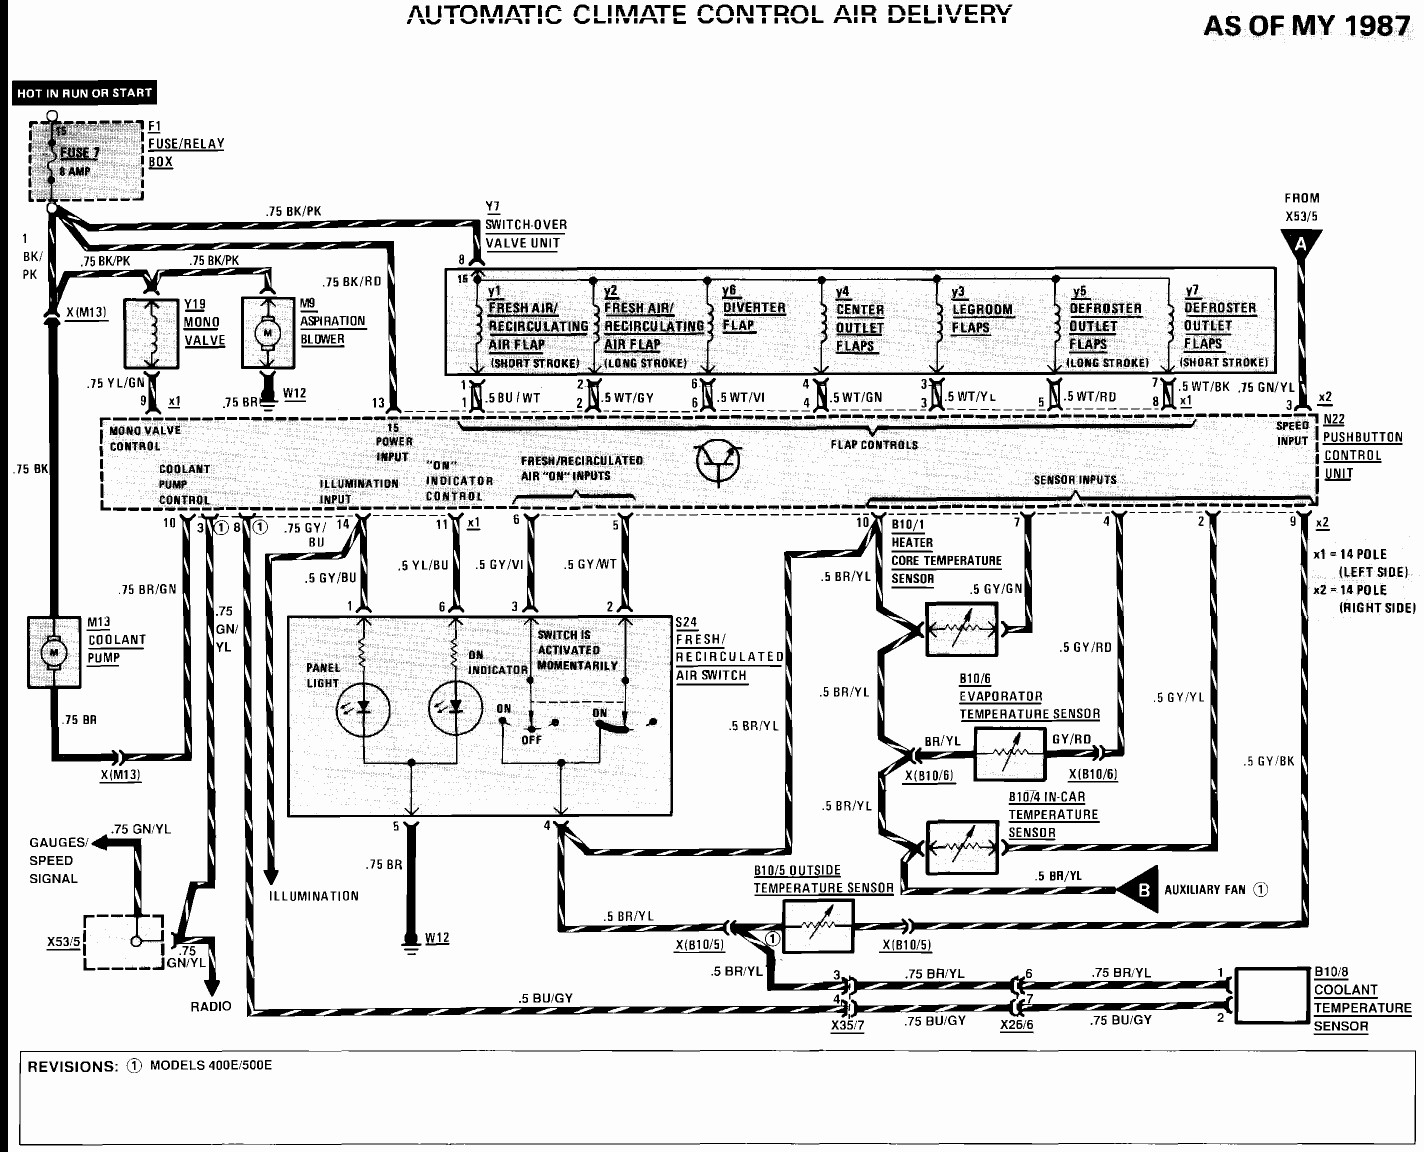 Mercedes E320 Radio Wiring - Wiring Diagrams Click on mercedes e320 ac problems, volvo 940 wiring diagram, isuzu hombre wiring diagram, porsche 912 wiring diagram, acura tl wiring diagram, mercedes e320 ignition switch, mercedes e320 rear suspension, ford fairmont wiring diagram, bmw x5 wiring diagram, jaguar xk8 wiring diagram, lexus rx300 wiring diagram, mercedes e320 battery, volvo 850 wiring diagram, porsche 356 wiring diagram, porsche 928 wiring diagram, geo storm wiring diagram, volvo s70 wiring diagram, mercedes e320 oil filter, audi tt wiring diagram, mercedes e320 fuel pump,